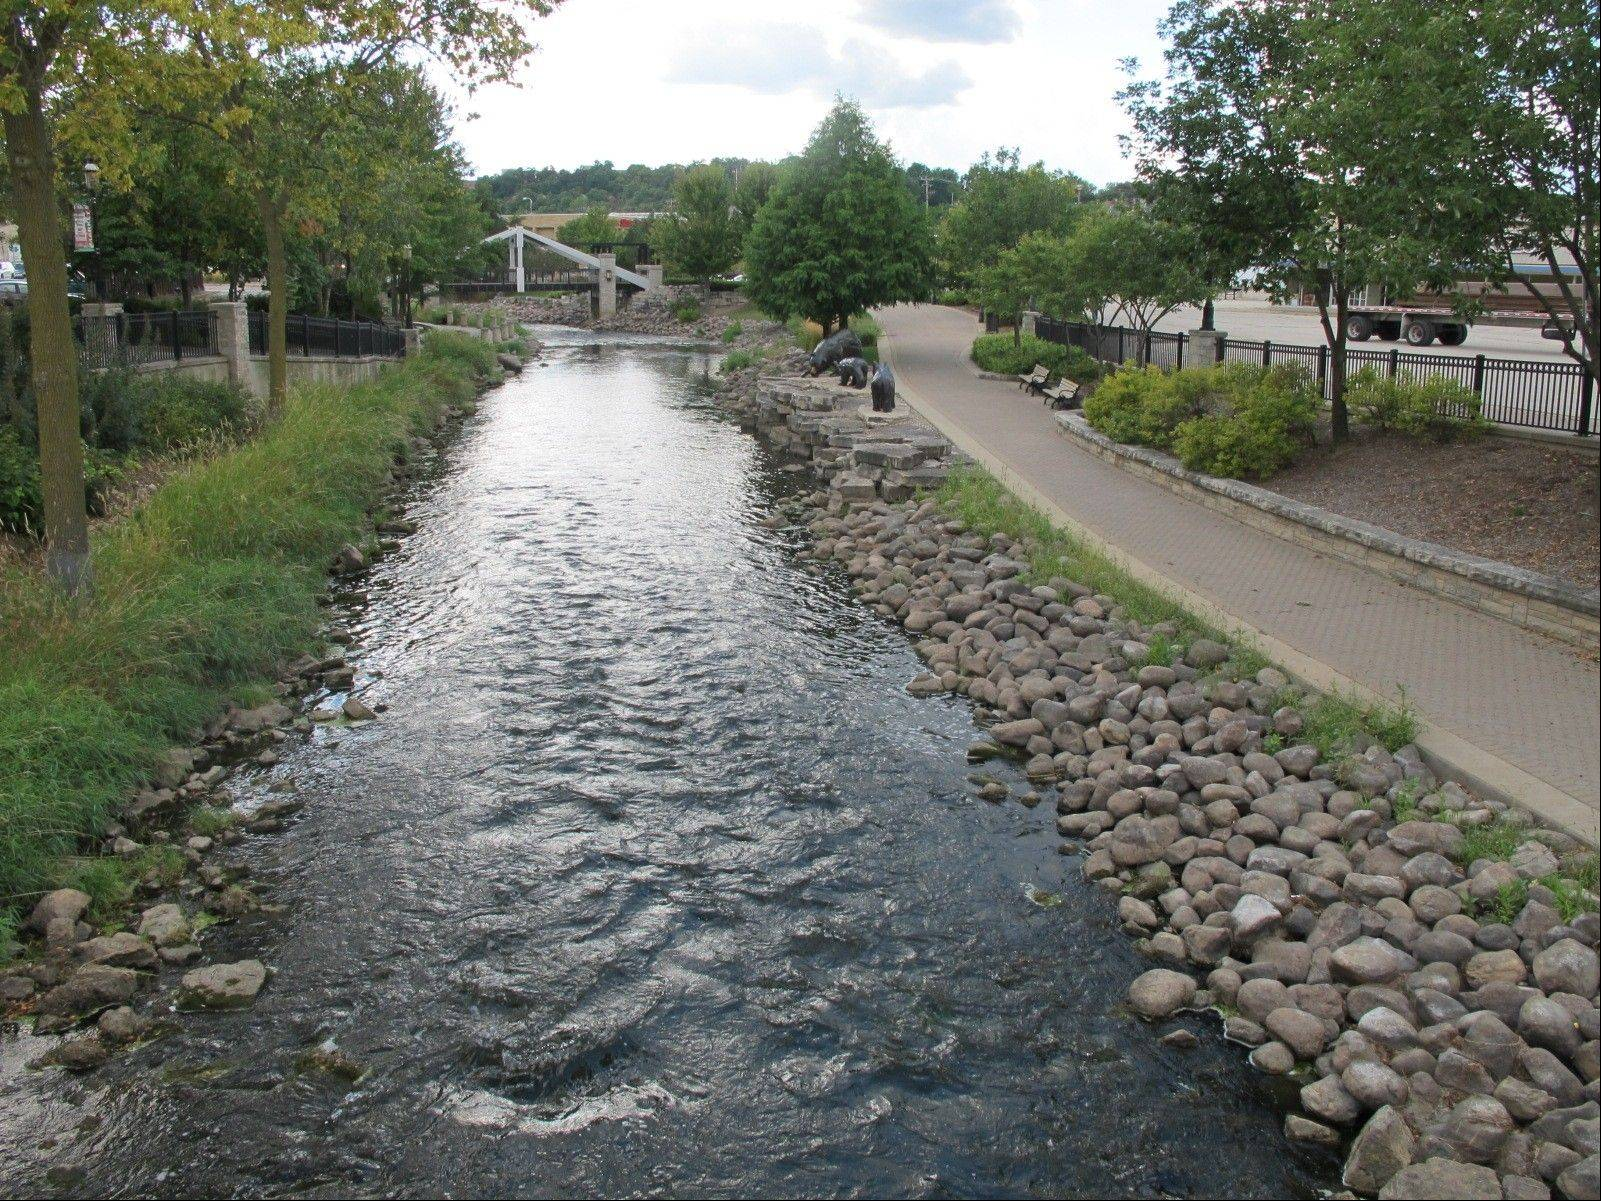 The Fox River flows through downtown Waukesha, Wis. The city of Waukesha is seeking permission to draw its drinking water from nearby Lake Michigan, because local officials say the river can't meet the city's needs.